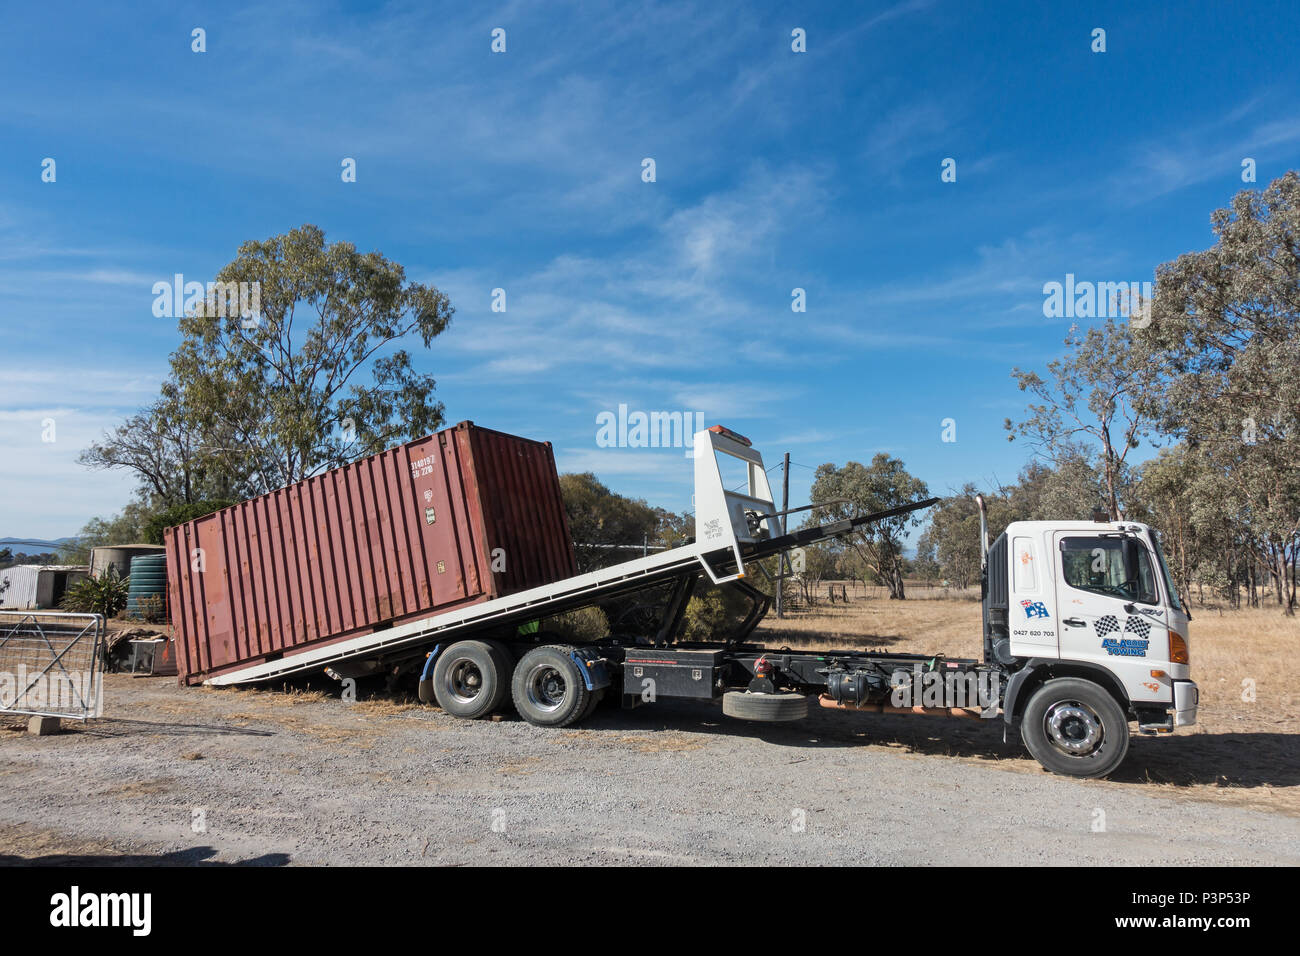 Tipper Truck High Resolution Stock Photography And Images Alamy